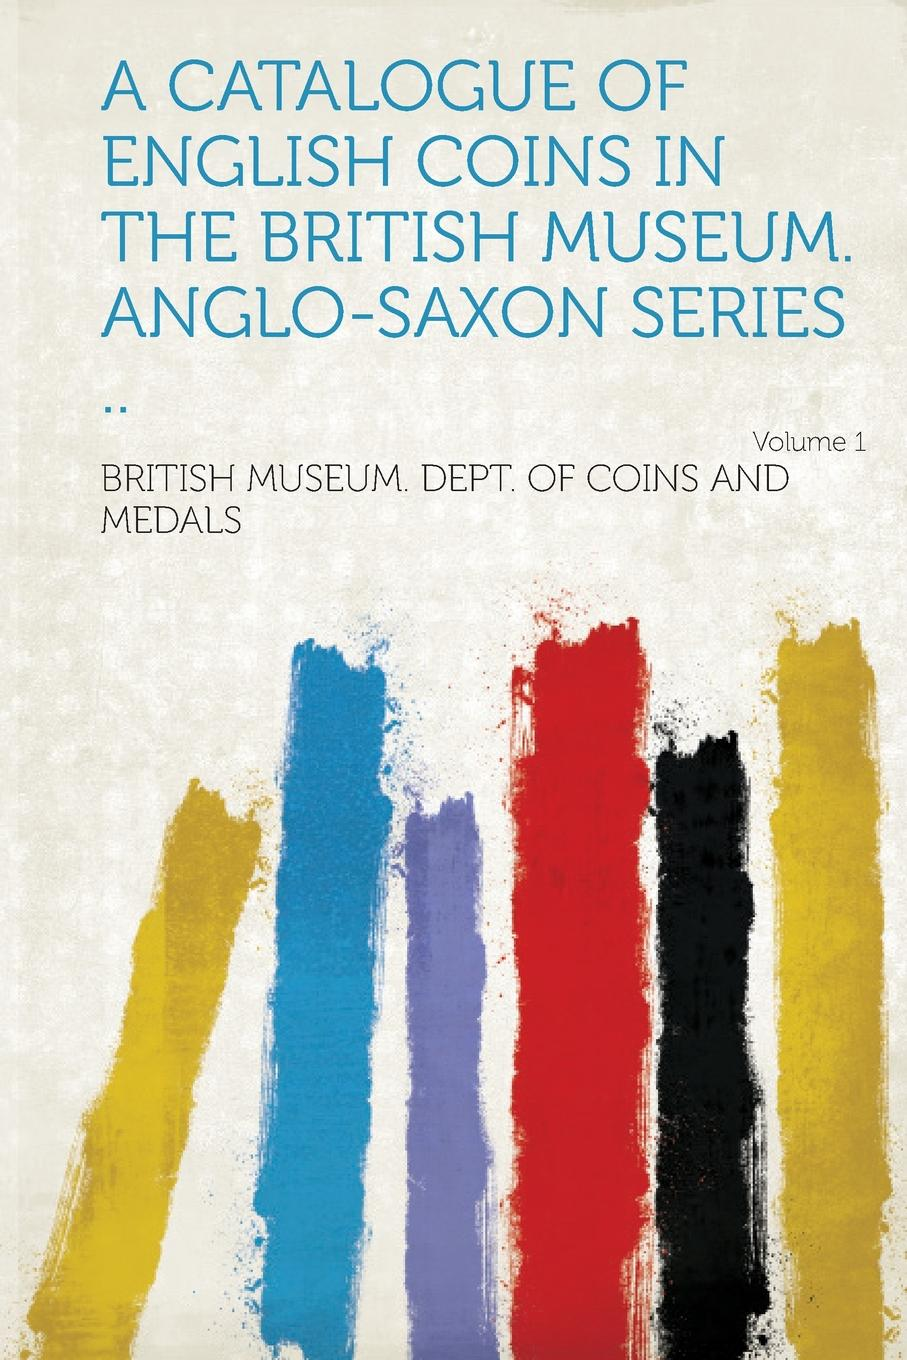 British Museum Dept of Coins a. Medals A Catalogue of English Coins in the British Museum. Anglo-Saxon Series .. Volume 1 cuhaj g michael th mccue d sanders k unusual world coins companion volume to standart catalog of world coins